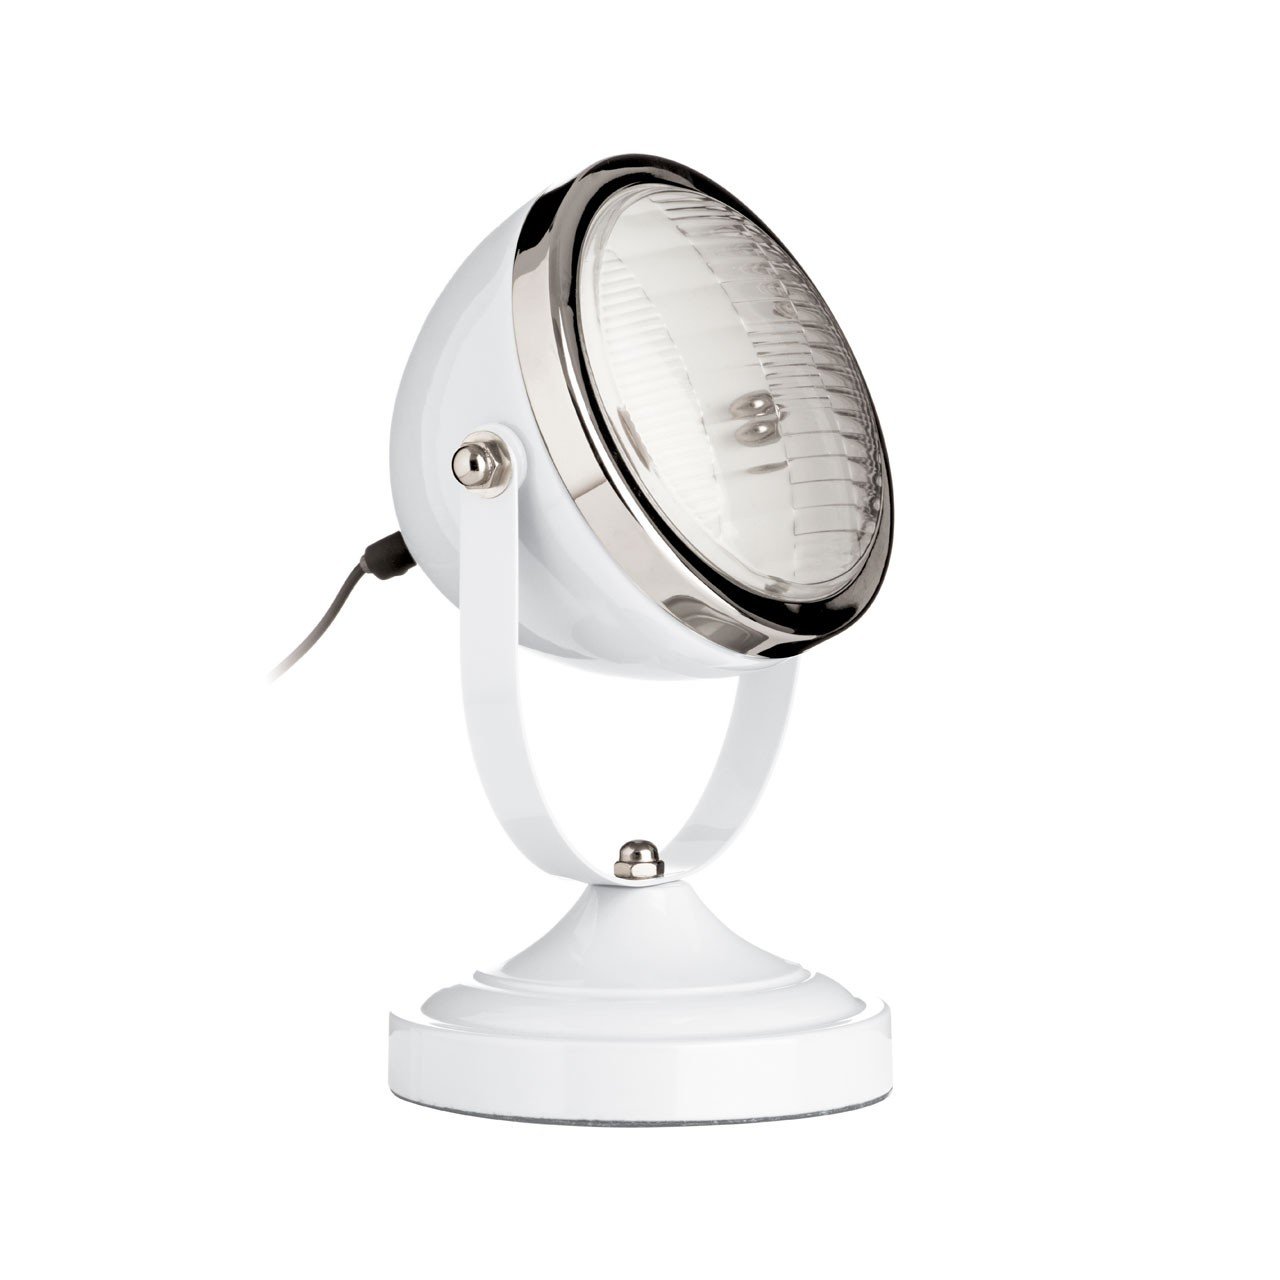 Prime Furnishing Chrome Spotlight Table Lamp - White